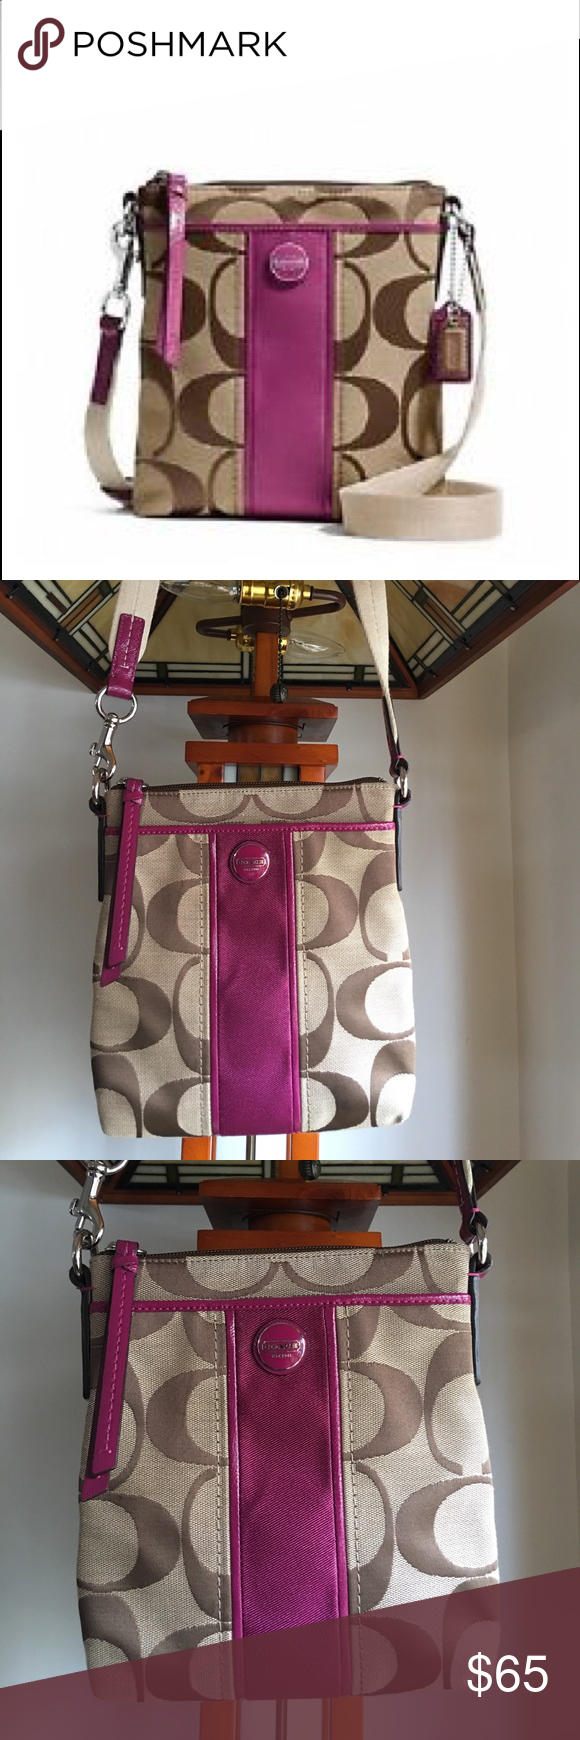 """NEW COACH LEGACY CROSS-BODY BAG NEW COACH legacy Cross-body bag.  Khaki/Passion Berry.  NEW, never used, w/o tags. No marks, inside or out. Please Refer to pics.  Dimensions 7 1/2"""" x 8 1/2''. Adjustable strap. COACH box, dust bag & keychain not included. Interior slip pocket & exterior front & back slip pocket.  Bag height 8.5"""" Coach Bags Crossbody Bags"""